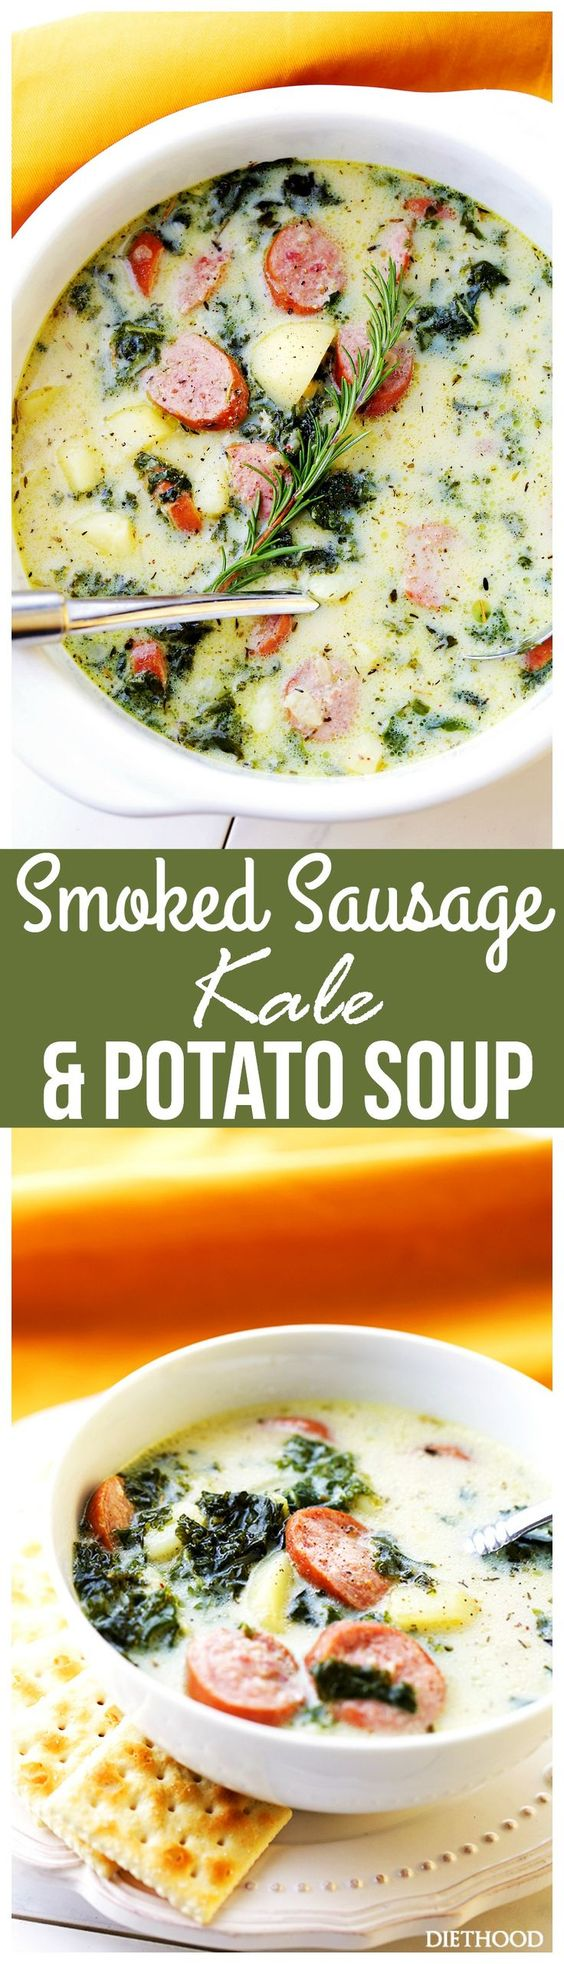 Smoked Sausage, Kale and Potato Soup Recipe | Diethood - The BEST Homemade Soups Recipes - Easy, Quick and Yummy Lunch and Dinner Family Favorites Meals Ideas #soup #souprecipes #homemadesoup #soups #easysouprecipes #easyrecipes #lunchrecipes #fallrecipes #winterrecipes